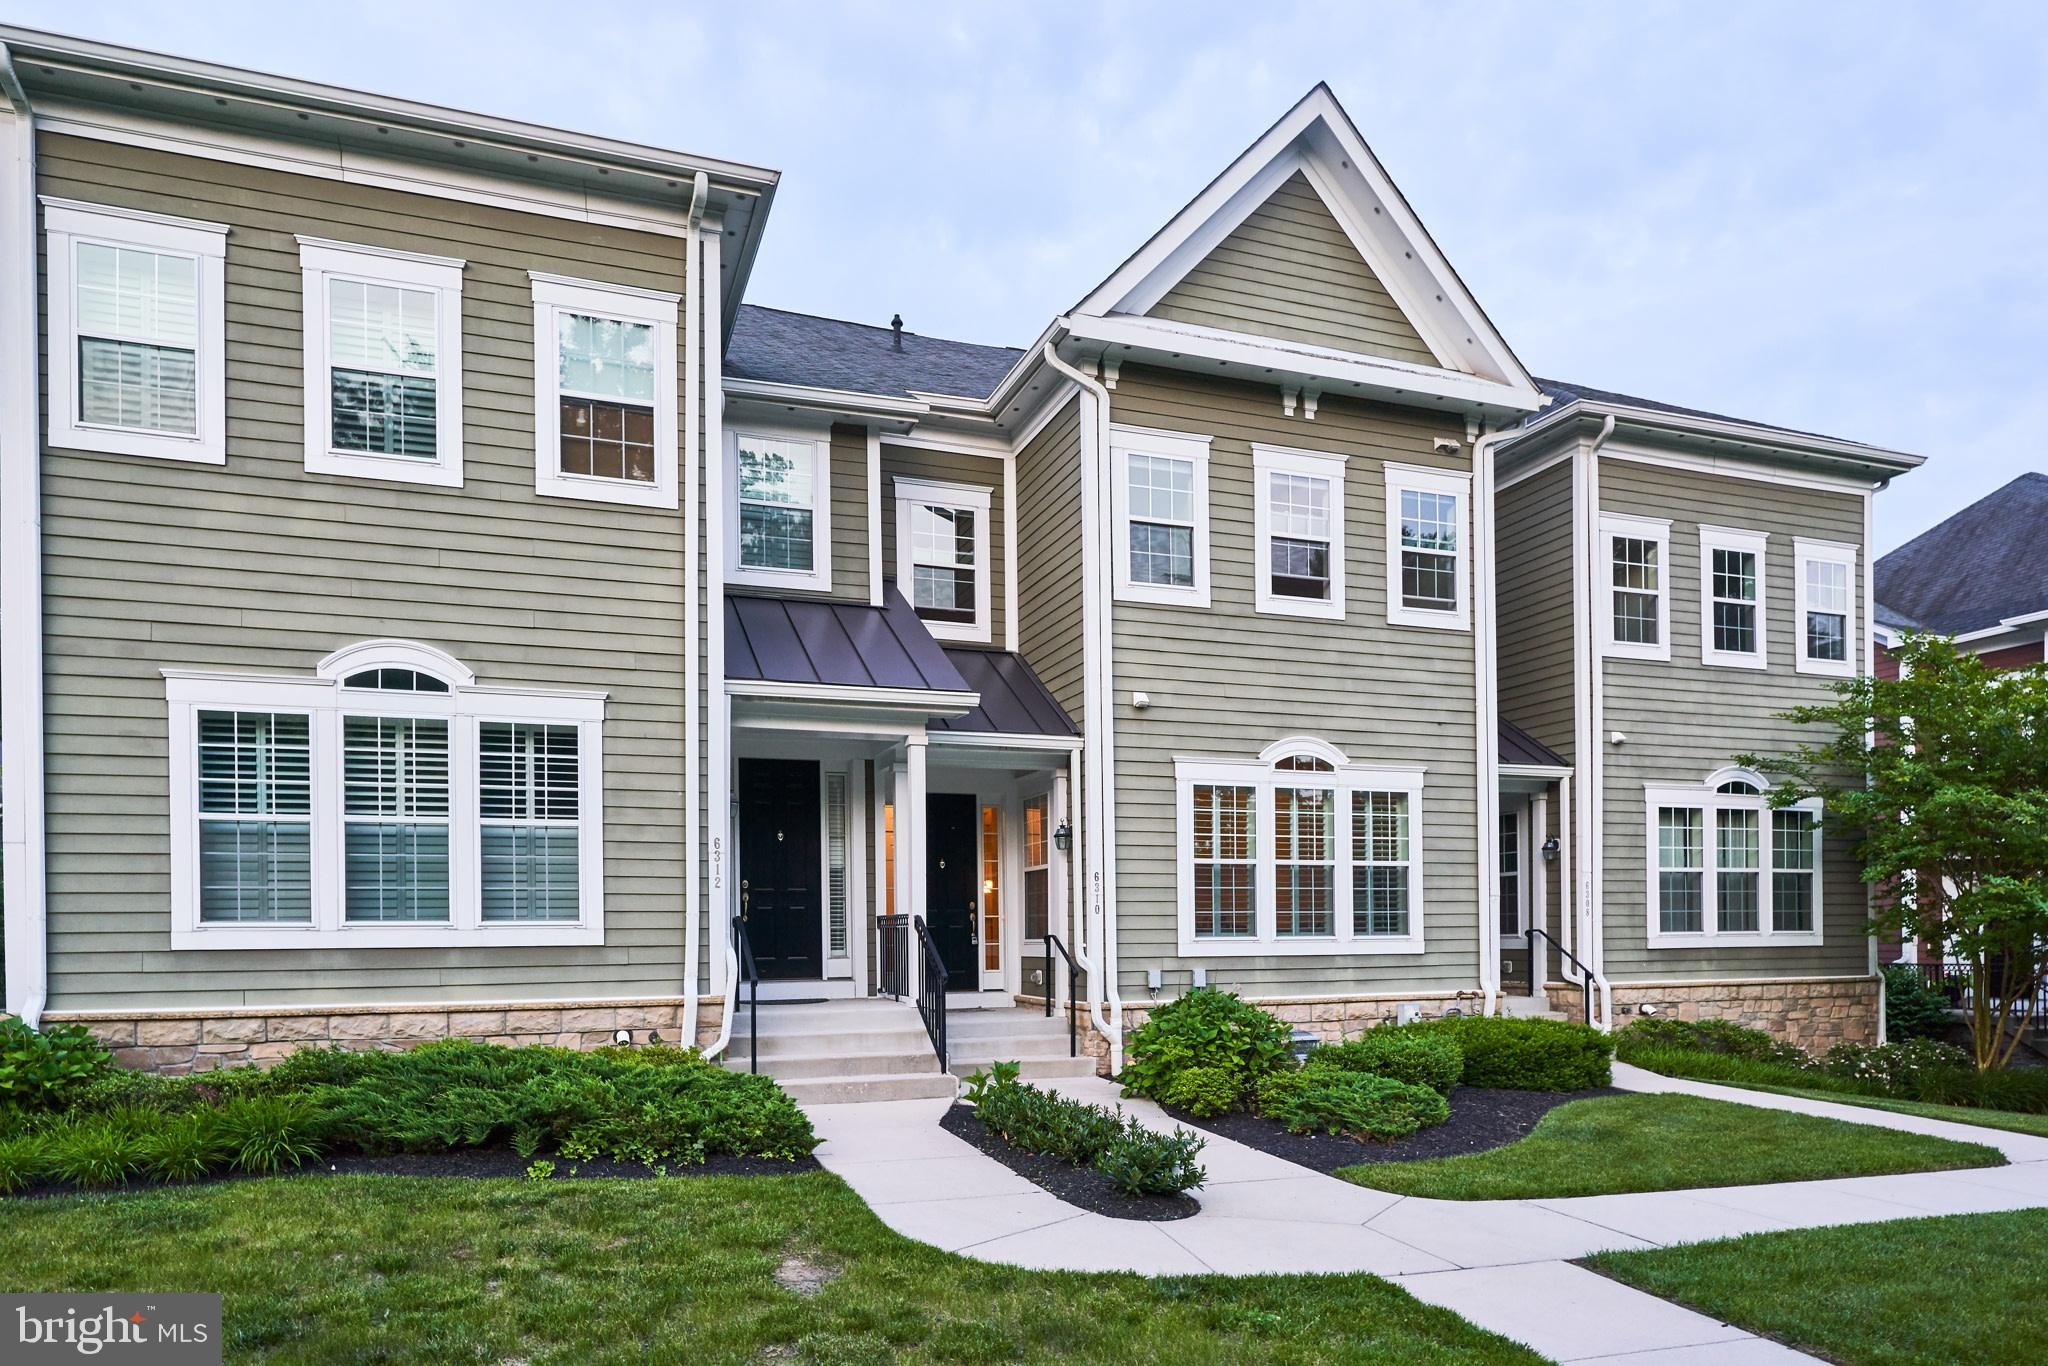 6310 CANTER WAY, BALTIMORE, MD 21212